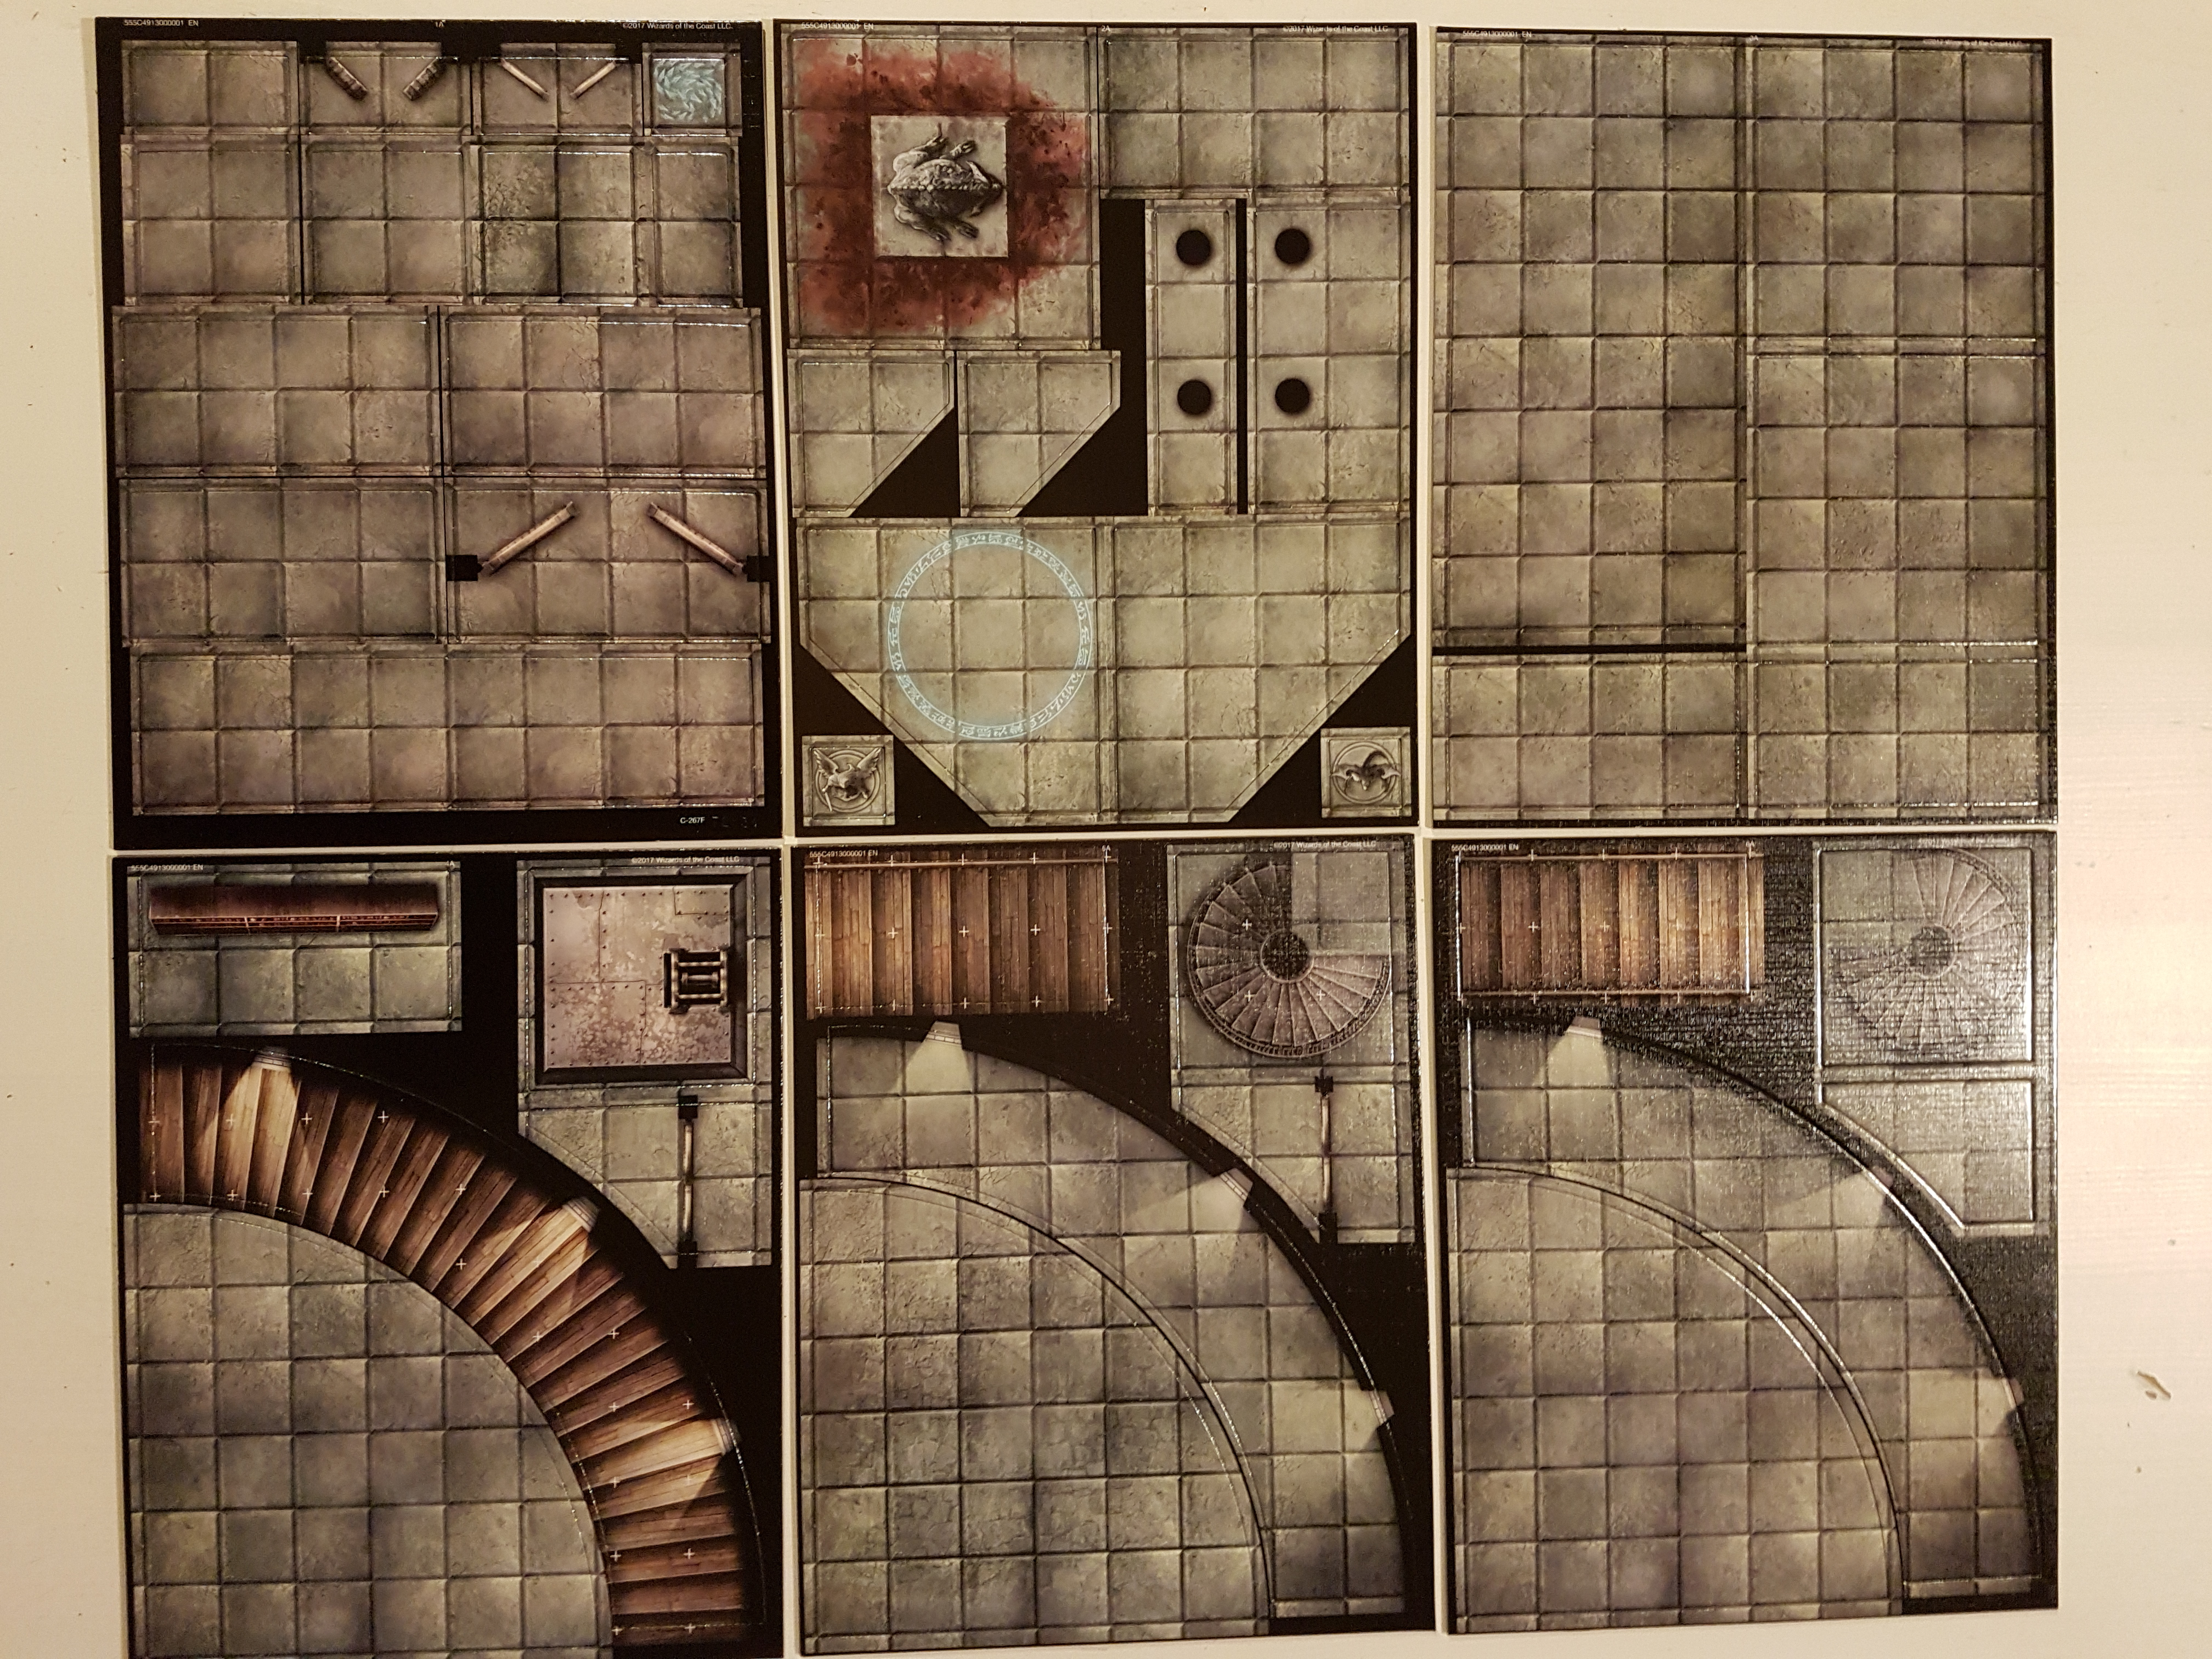 D&D Dungeon Tiles Reincarnated - Boardgamejunkies